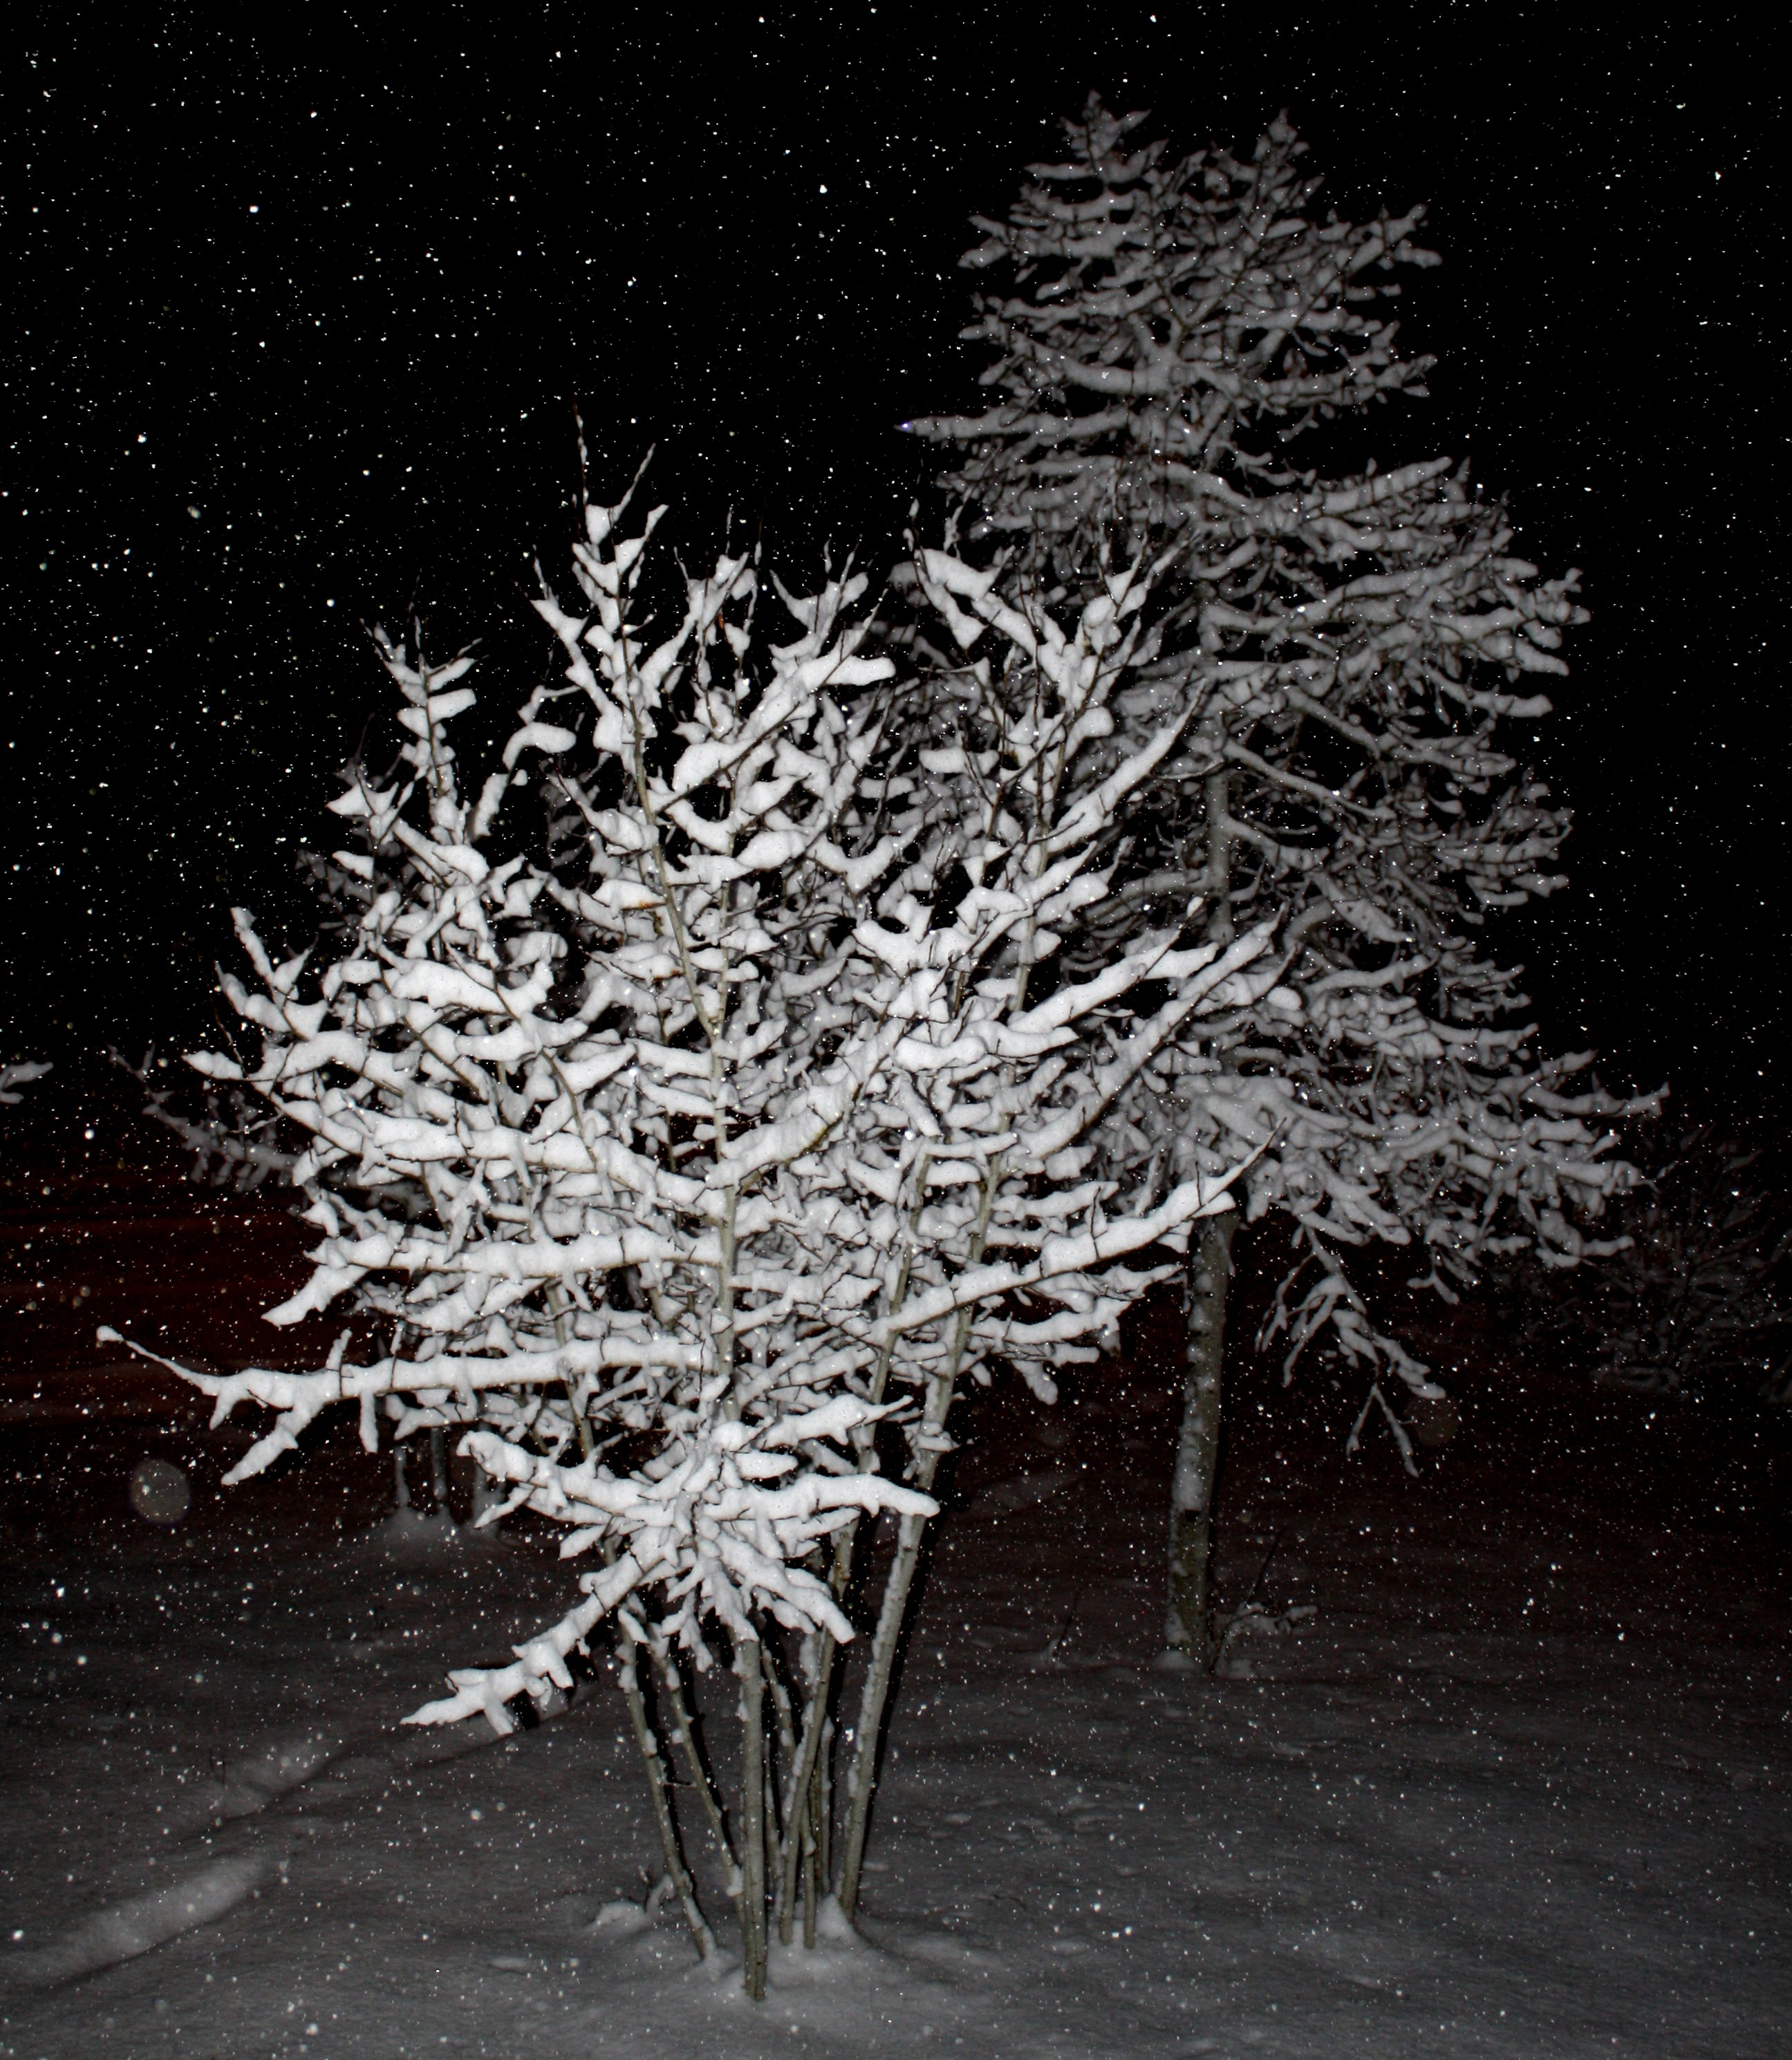 Trees With Snow Pictures Snow Falling on Trees at Night